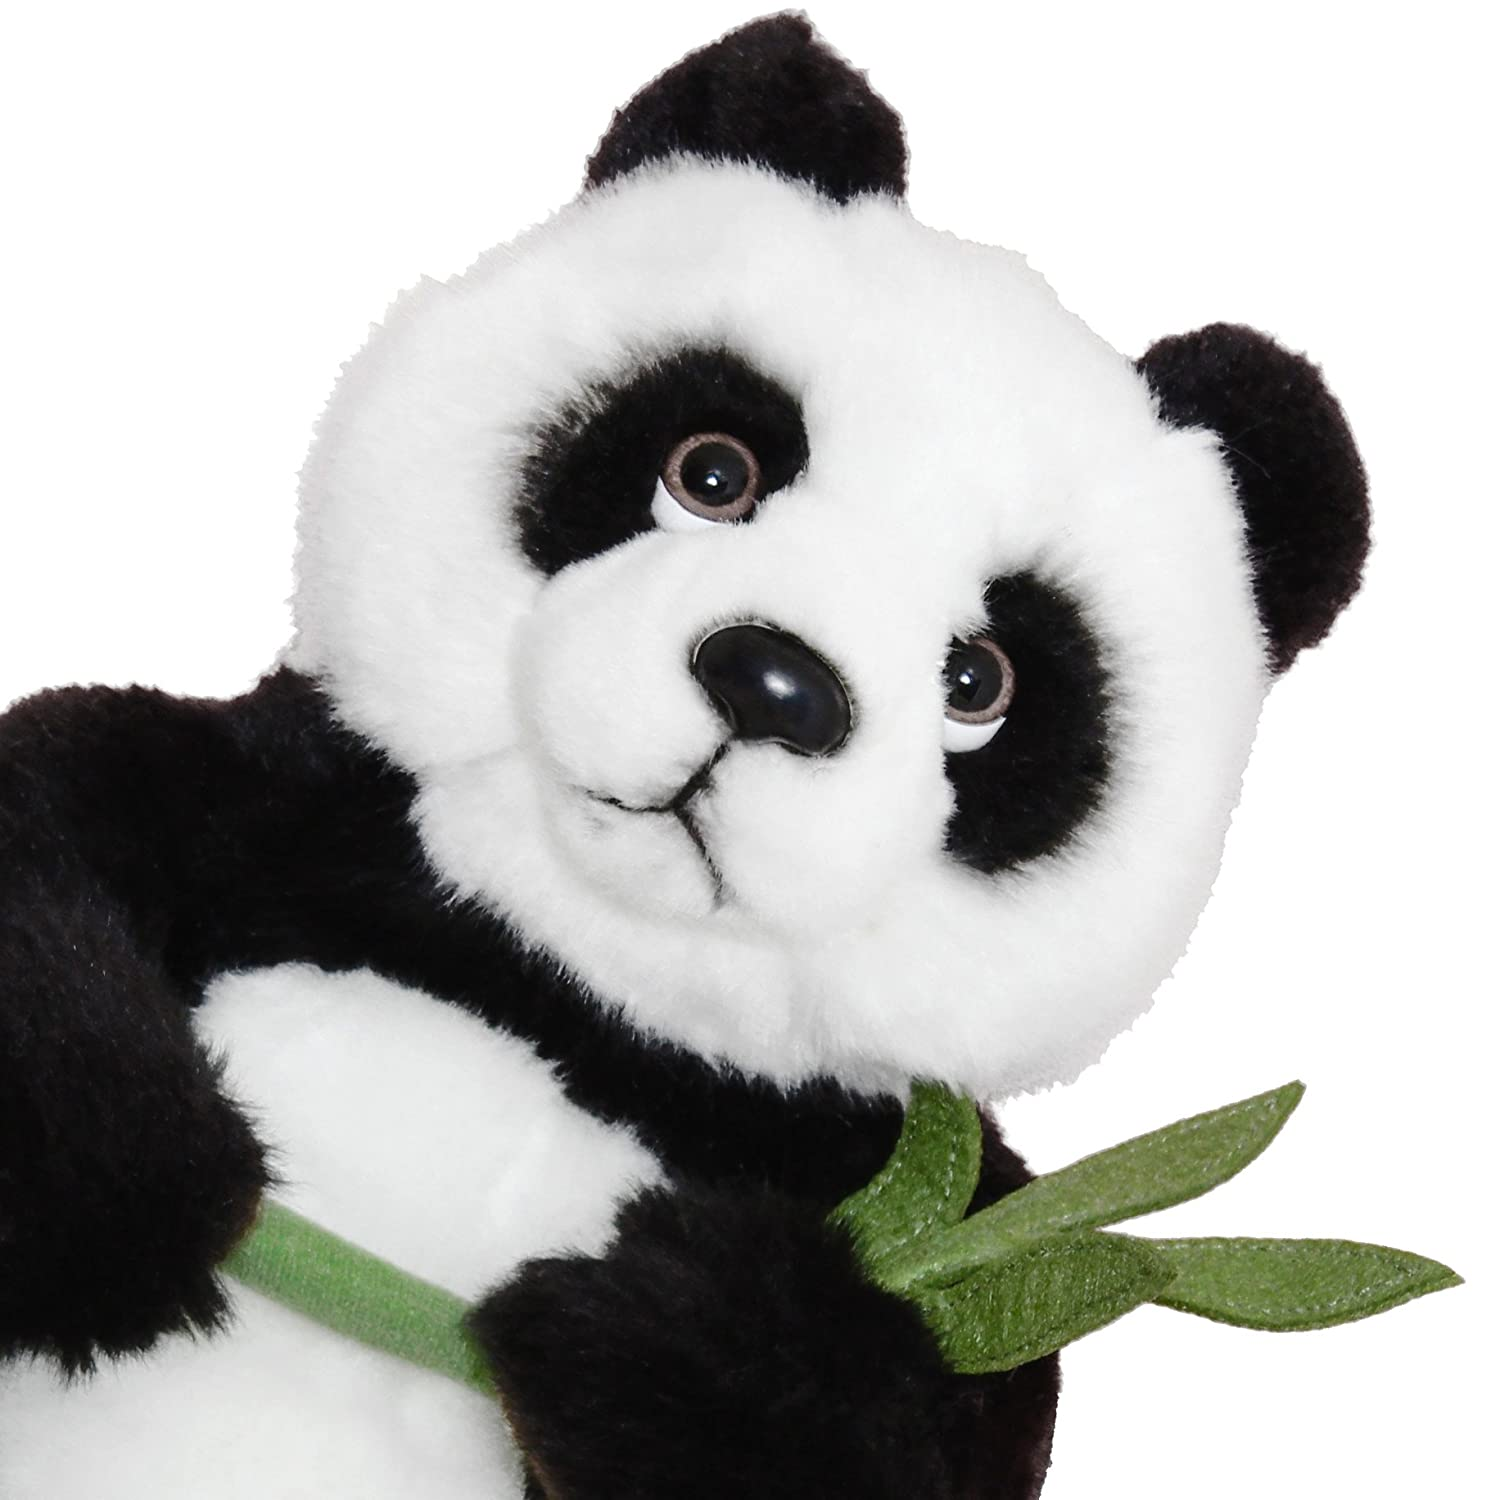 Amazon.com: BRUBAKER Panda Stuffed Animal with Bamboo - 11 Inches - Plush Toy - Soft Toy: Toys & Games